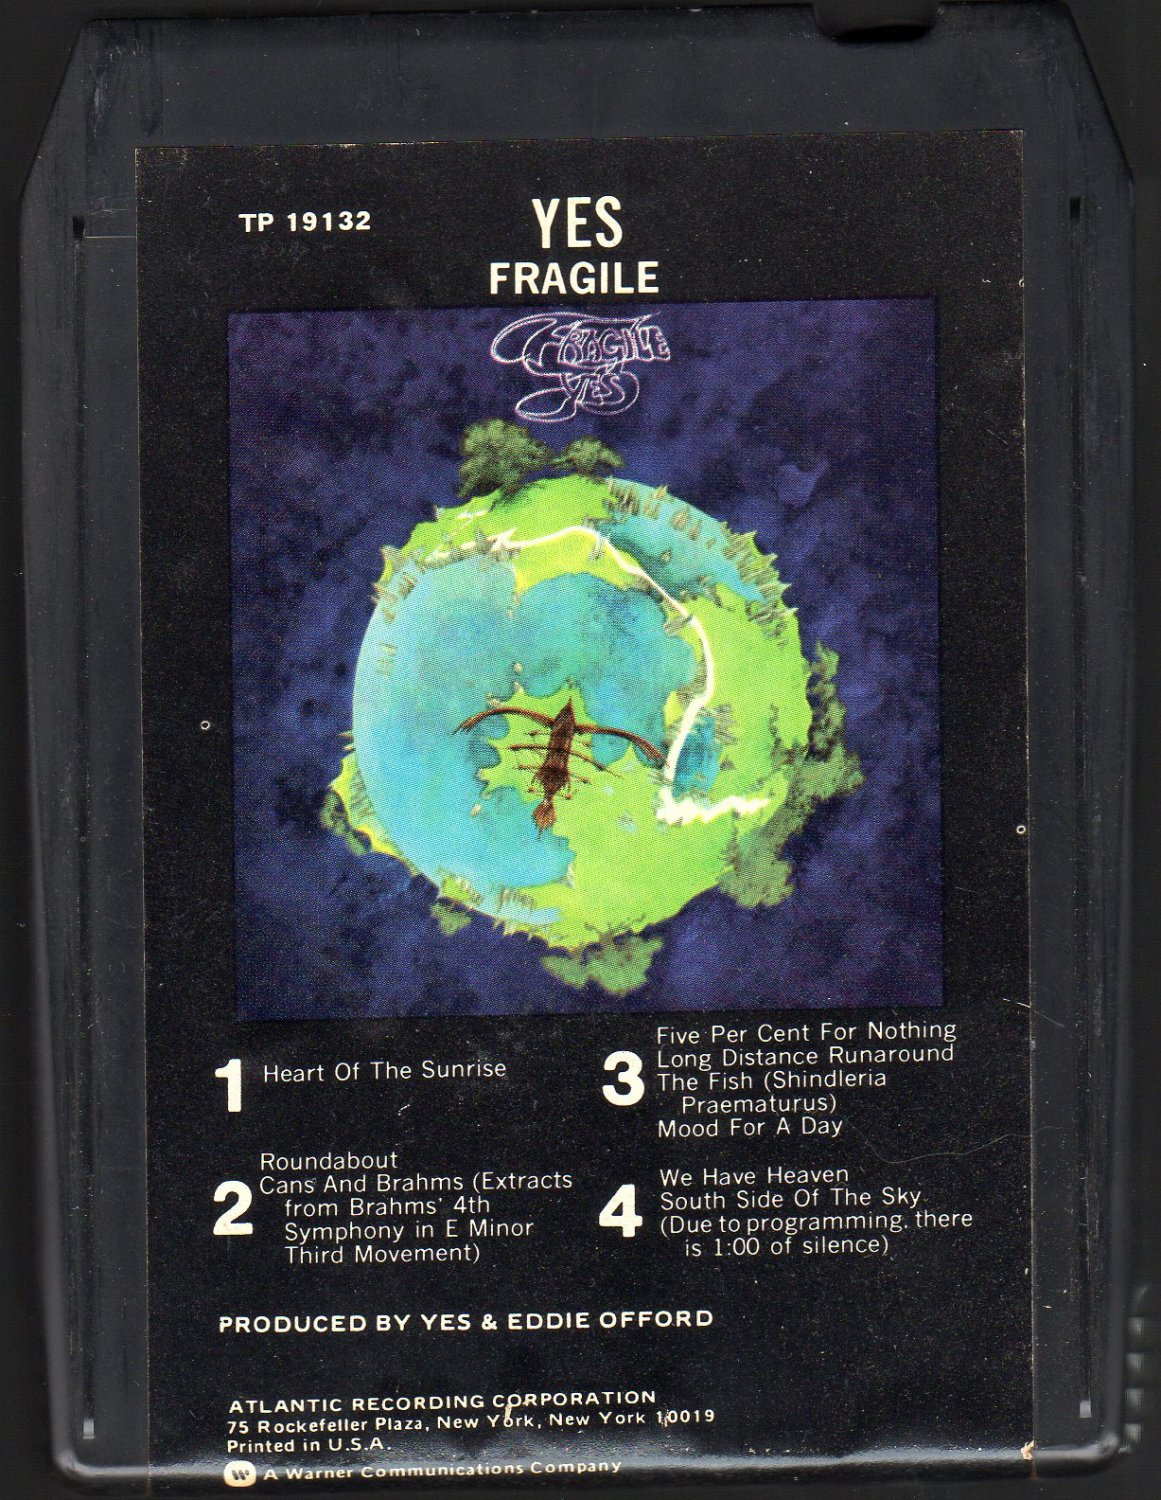 Yes - Fragile 8-track tape